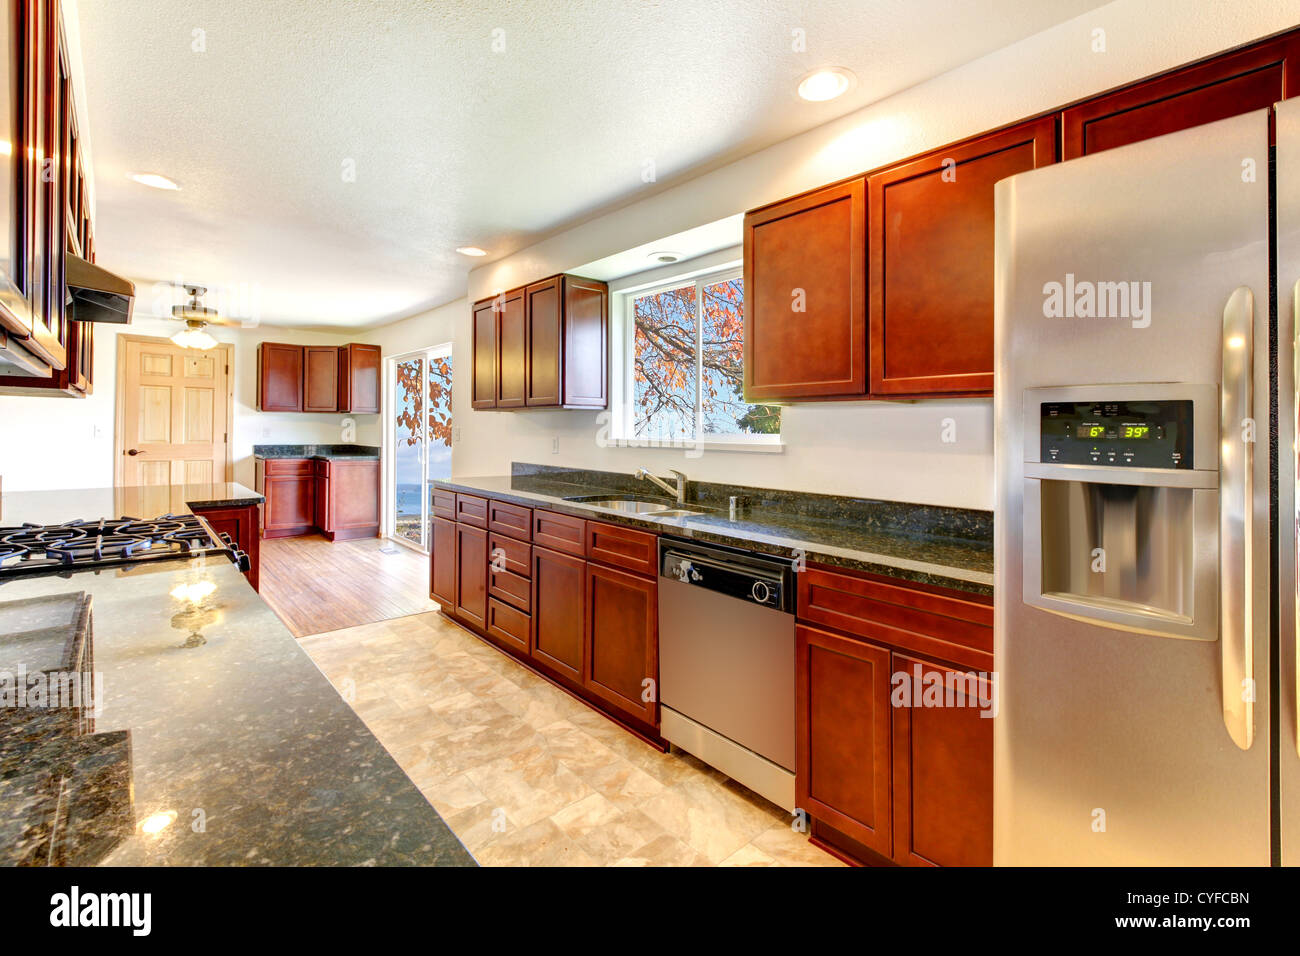 Large Bright Kitchen With Dark Cherry Cabinets And Stainless